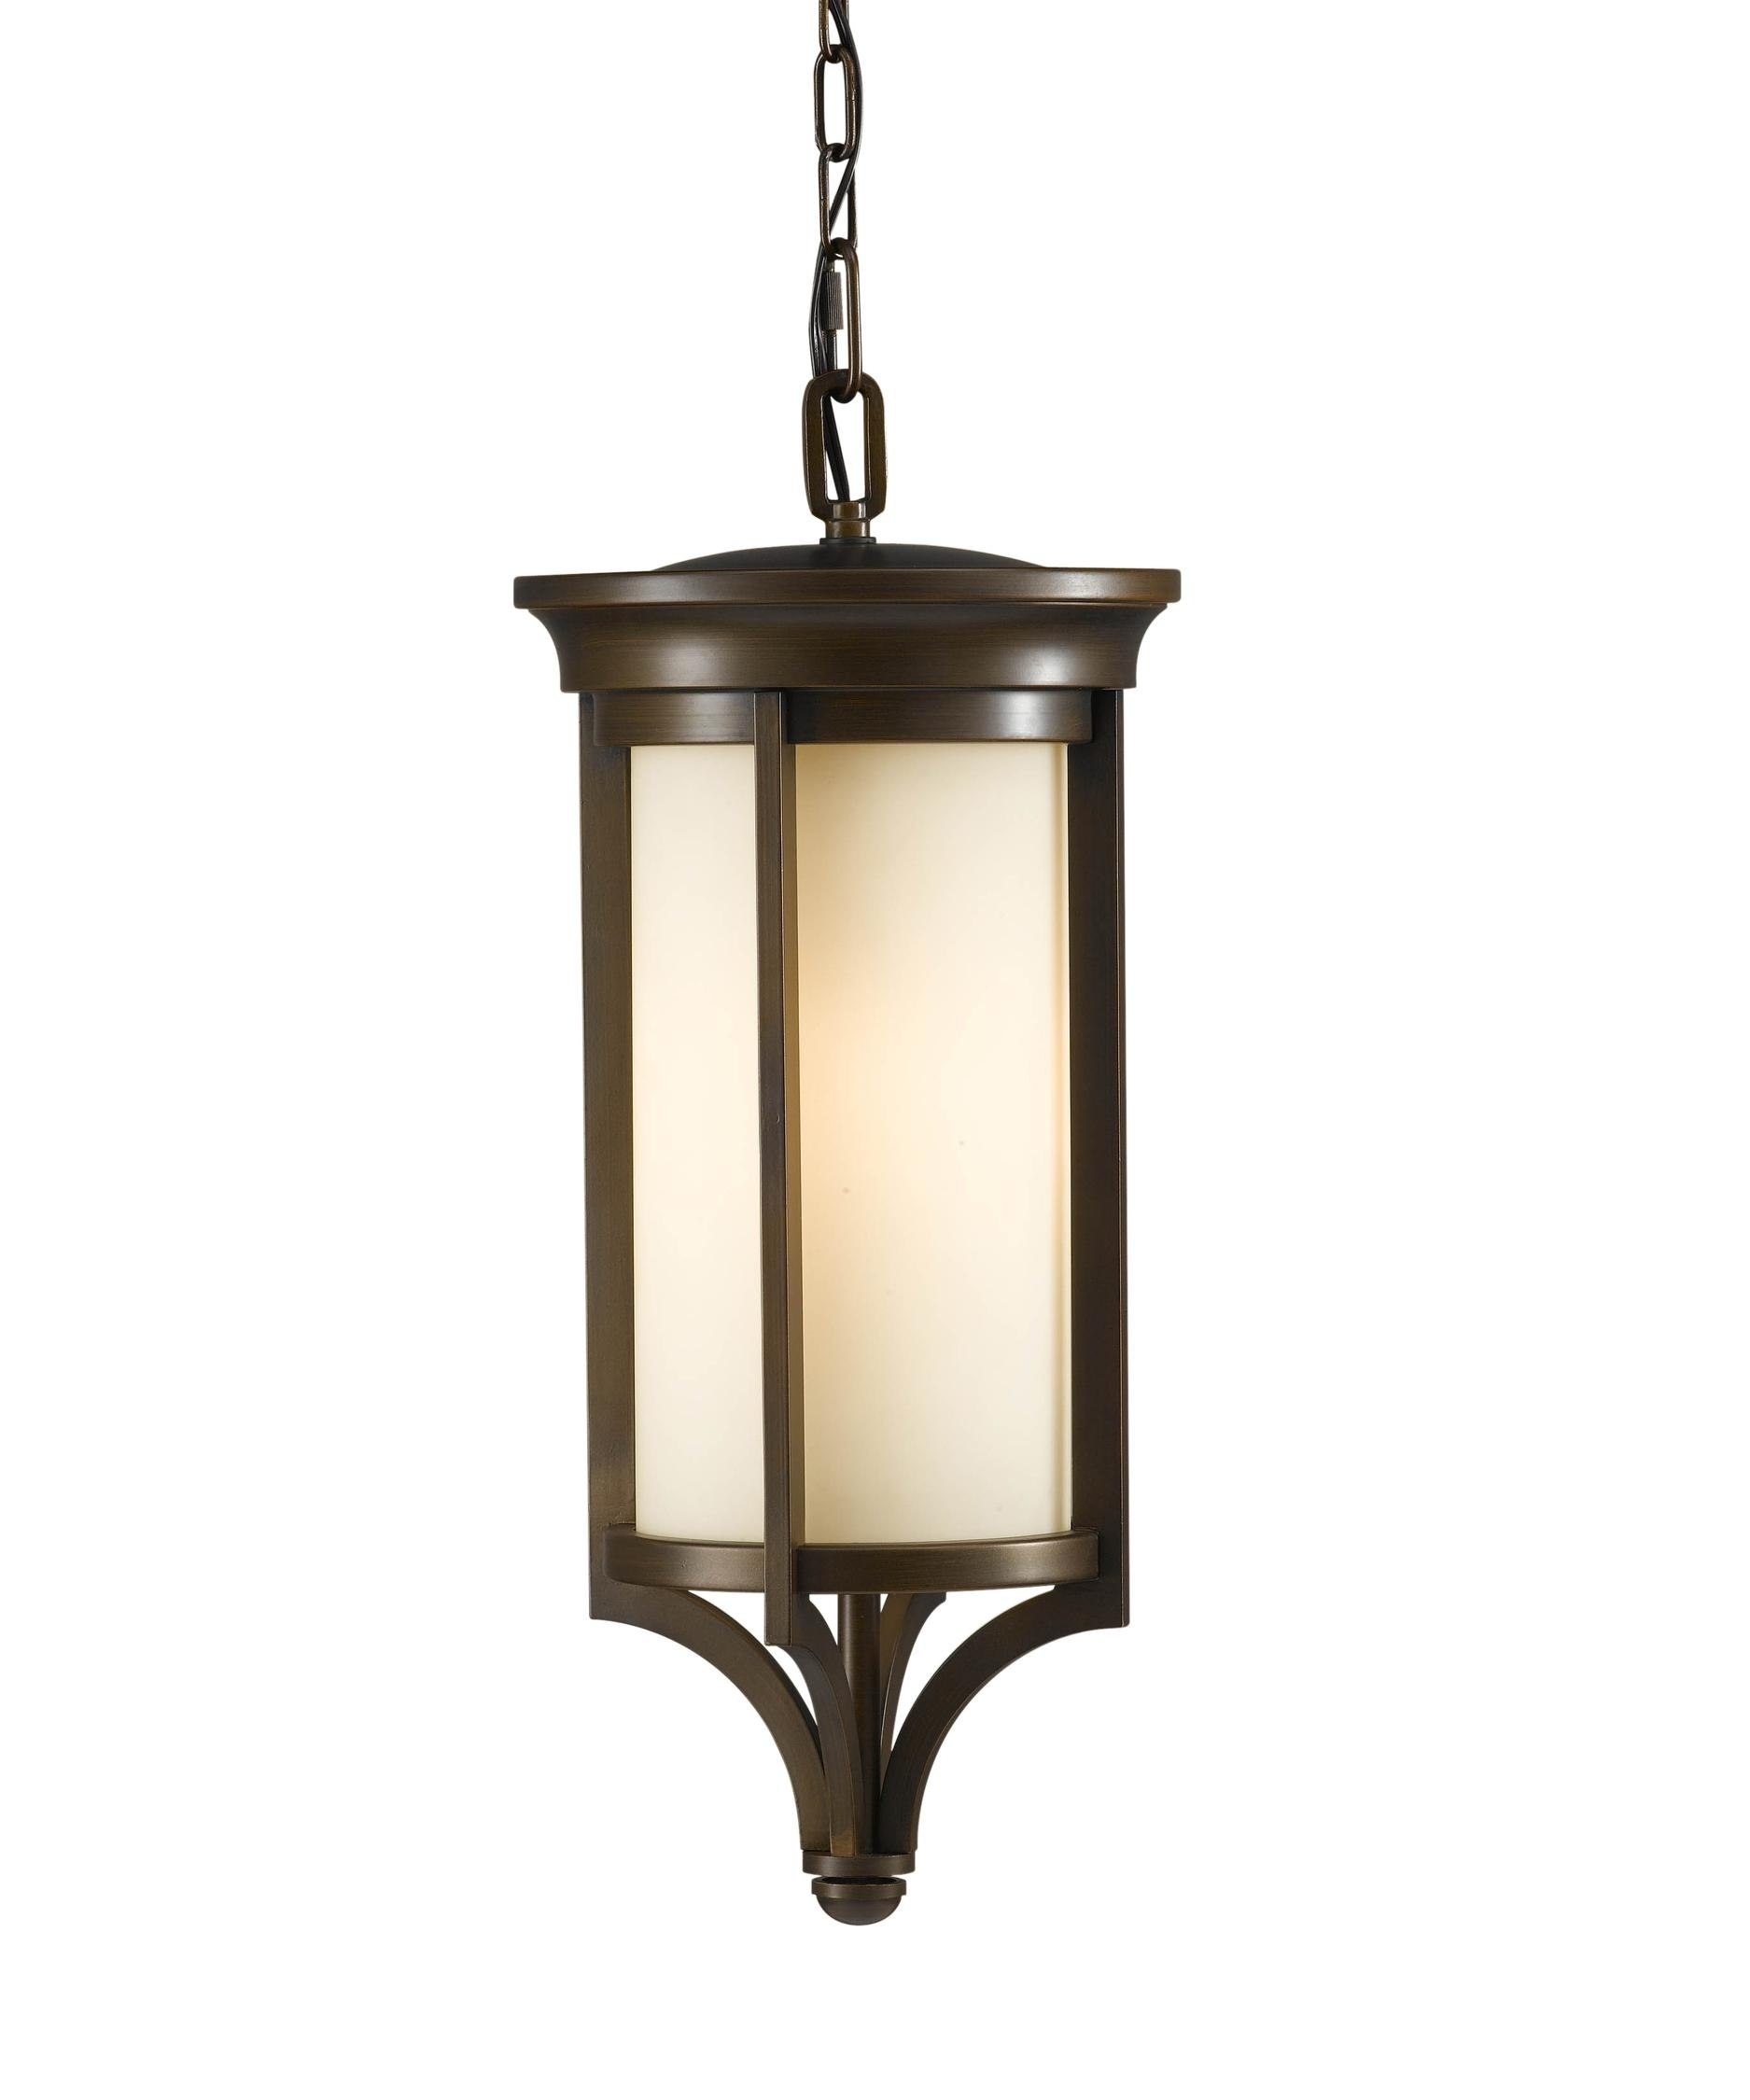 Murray Feiss Ol7511 Merrill 10 Inch Wide 1 Light Outdoor Hanging Pertaining To Electric Outdoor Hanging Lanterns (#10 of 15)